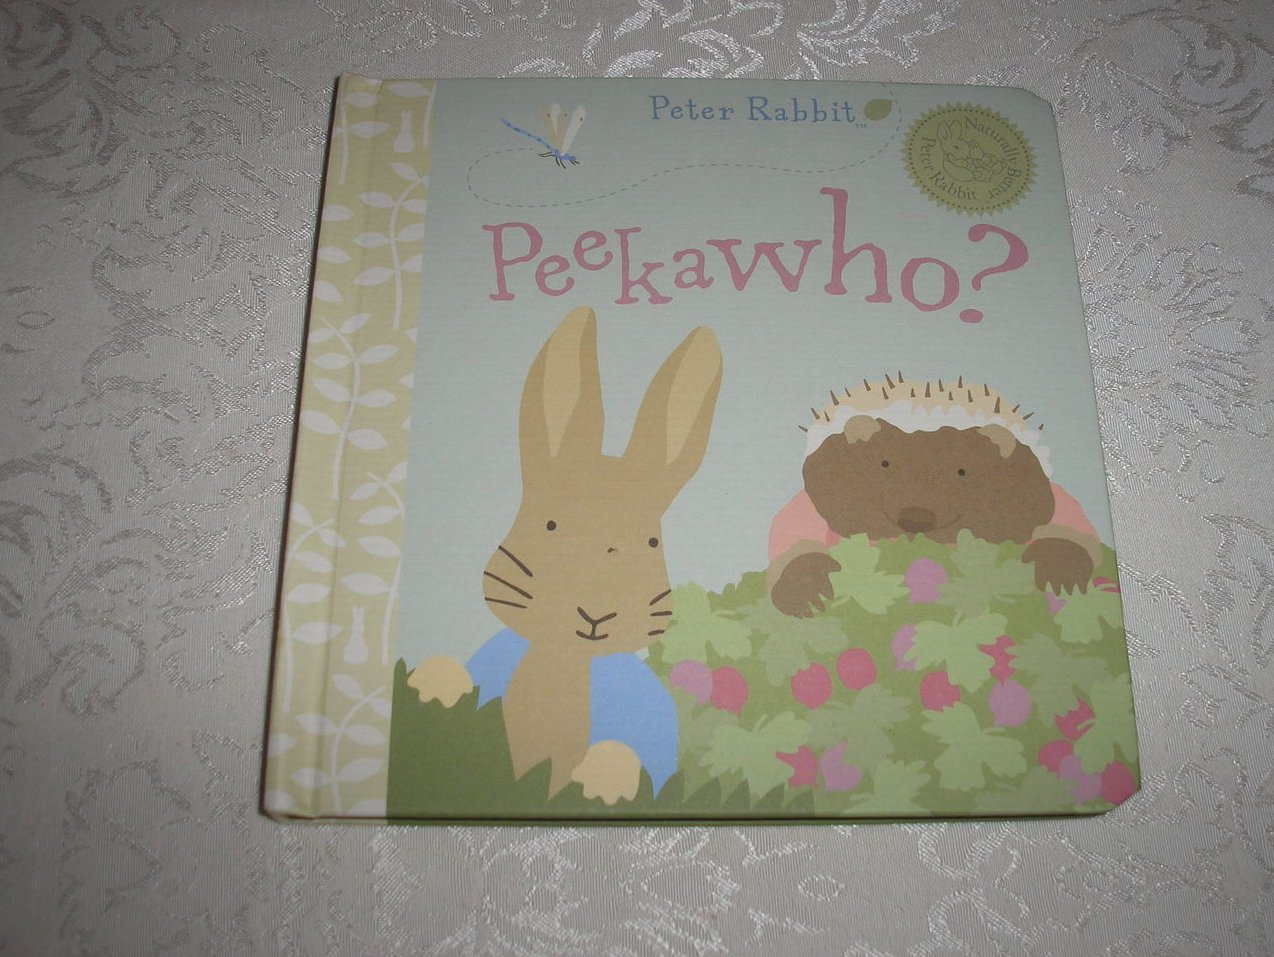 Peter Rabbit Peekawho? Frederick Warne brand new lift a flap board book